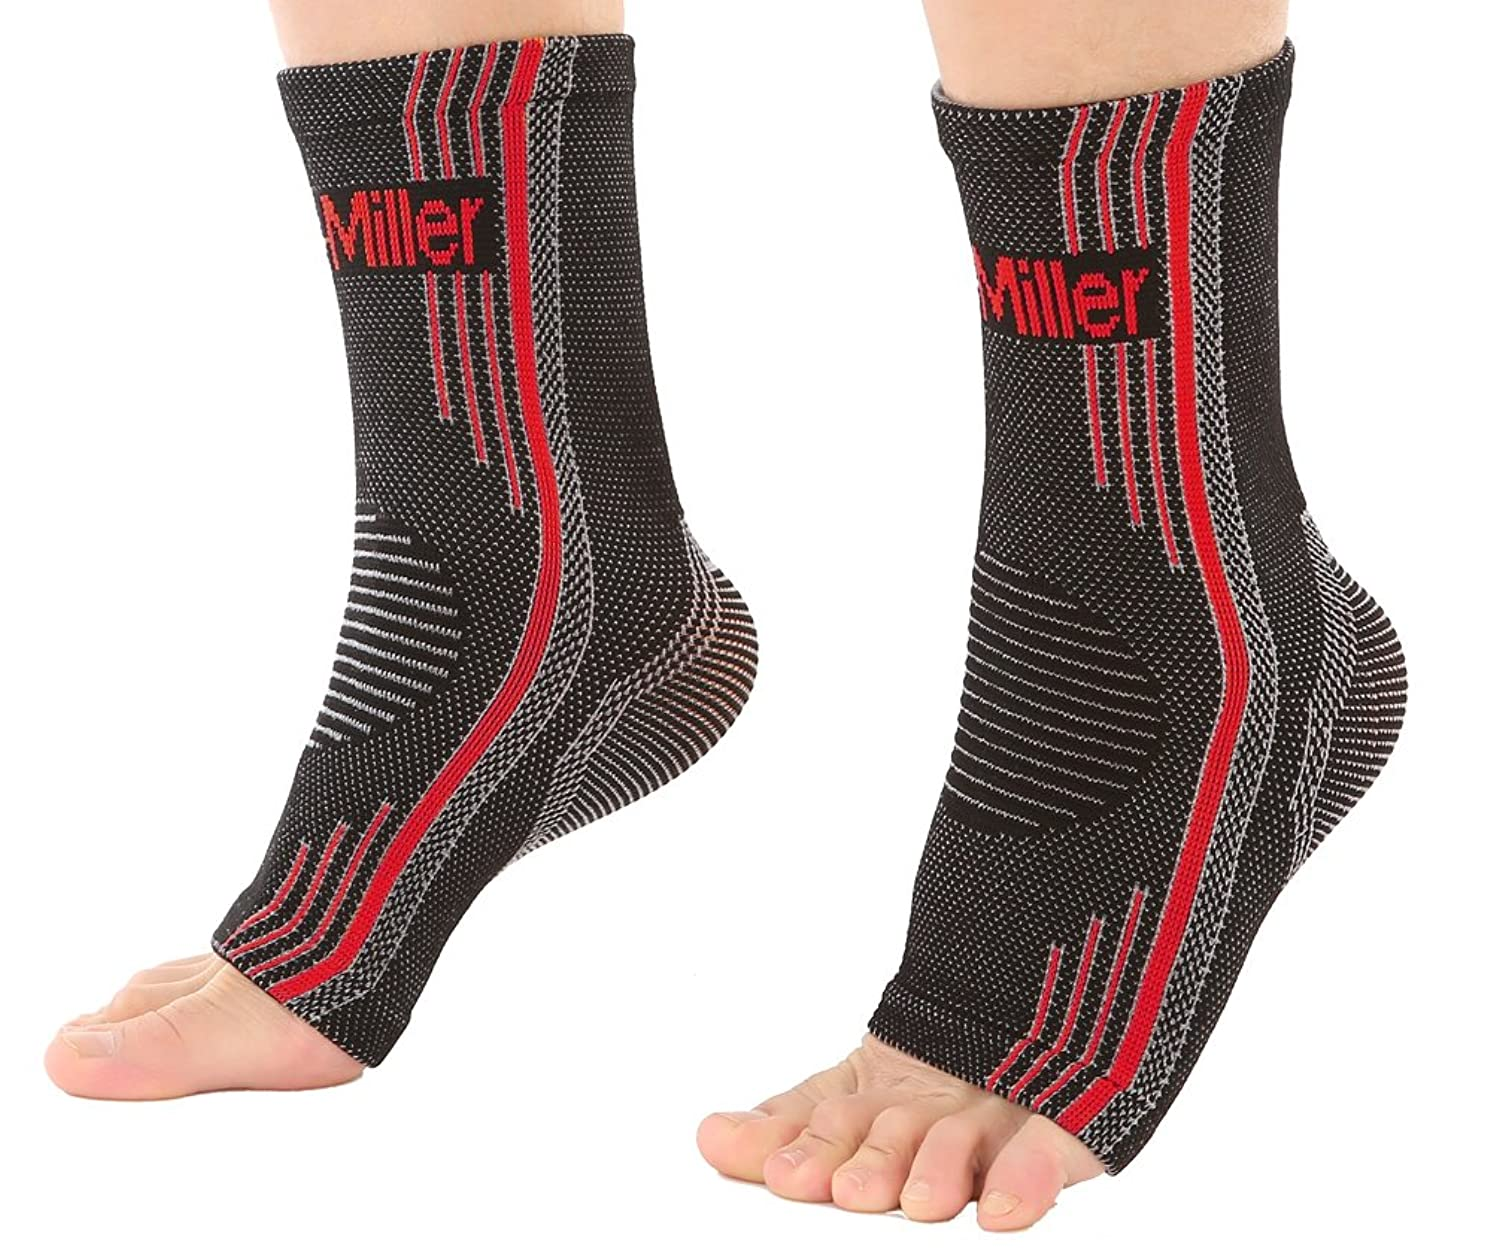 Doc Miller Premium Ankle Brace Compression Support Sleeve Socks for Swollen Foot Plantar Fasciitis Achilles Tendonitis, Use as Injury Support Recovery Eases Pain Swelling 1 Pair (Red, Large)